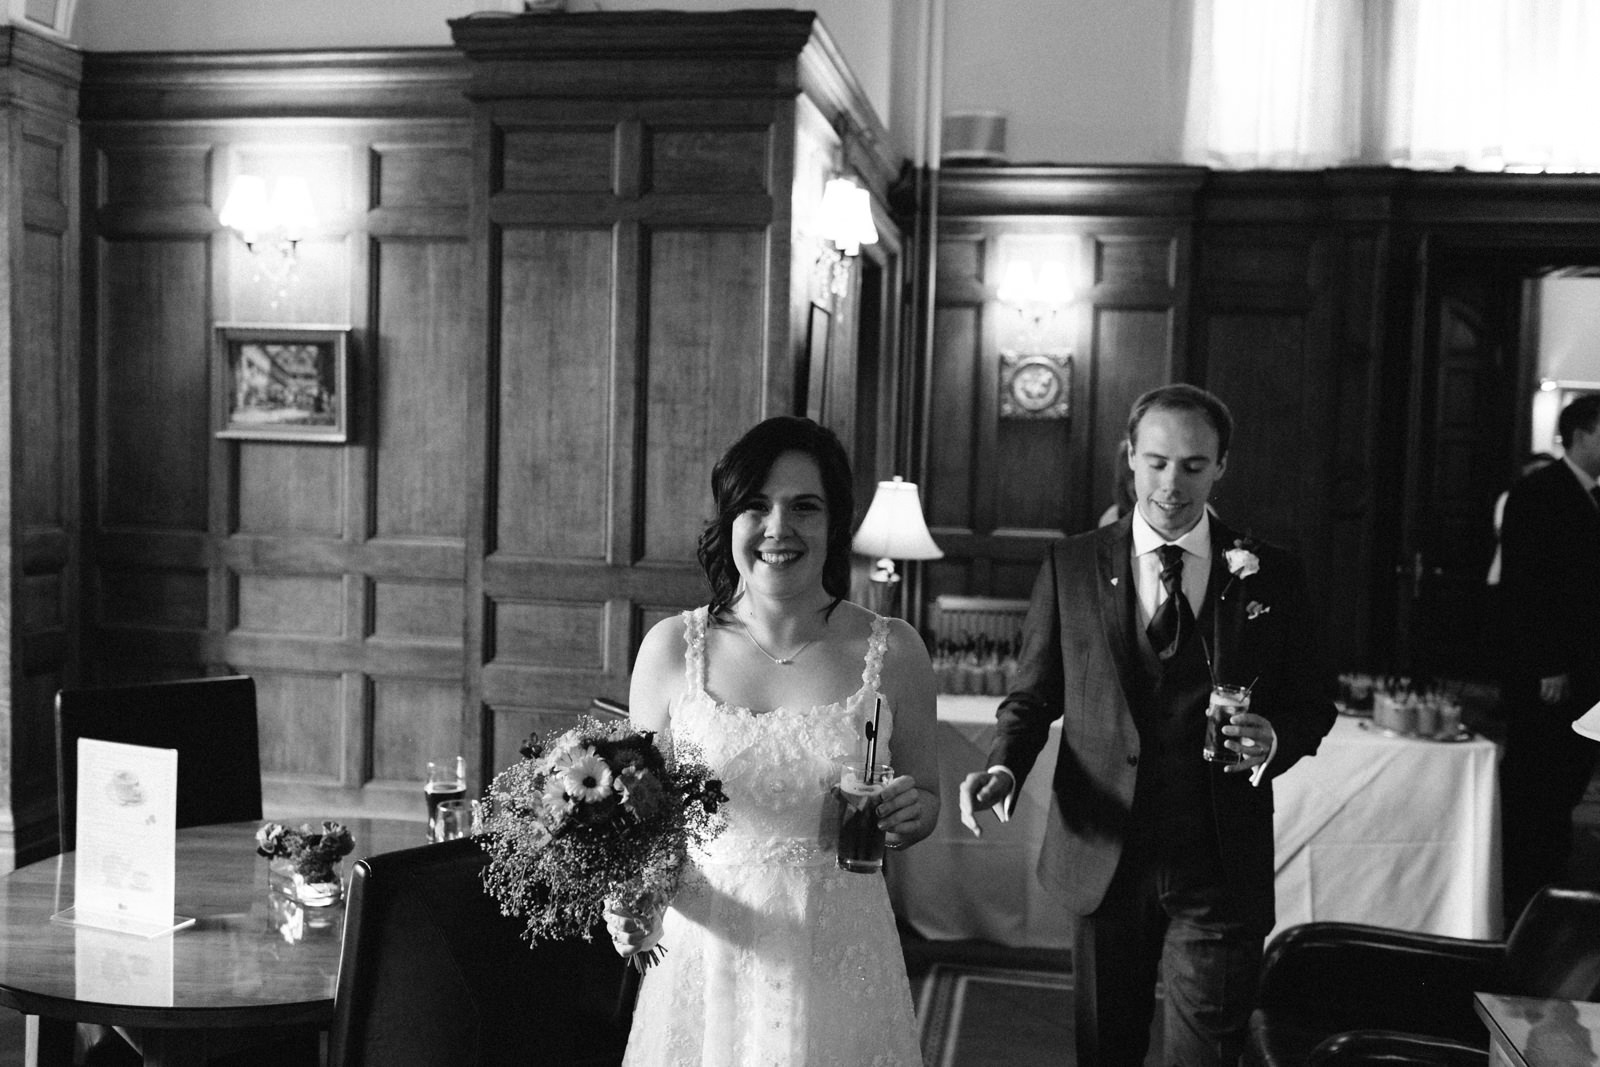 Branston Hall Wedding Photographer-324407.jpg